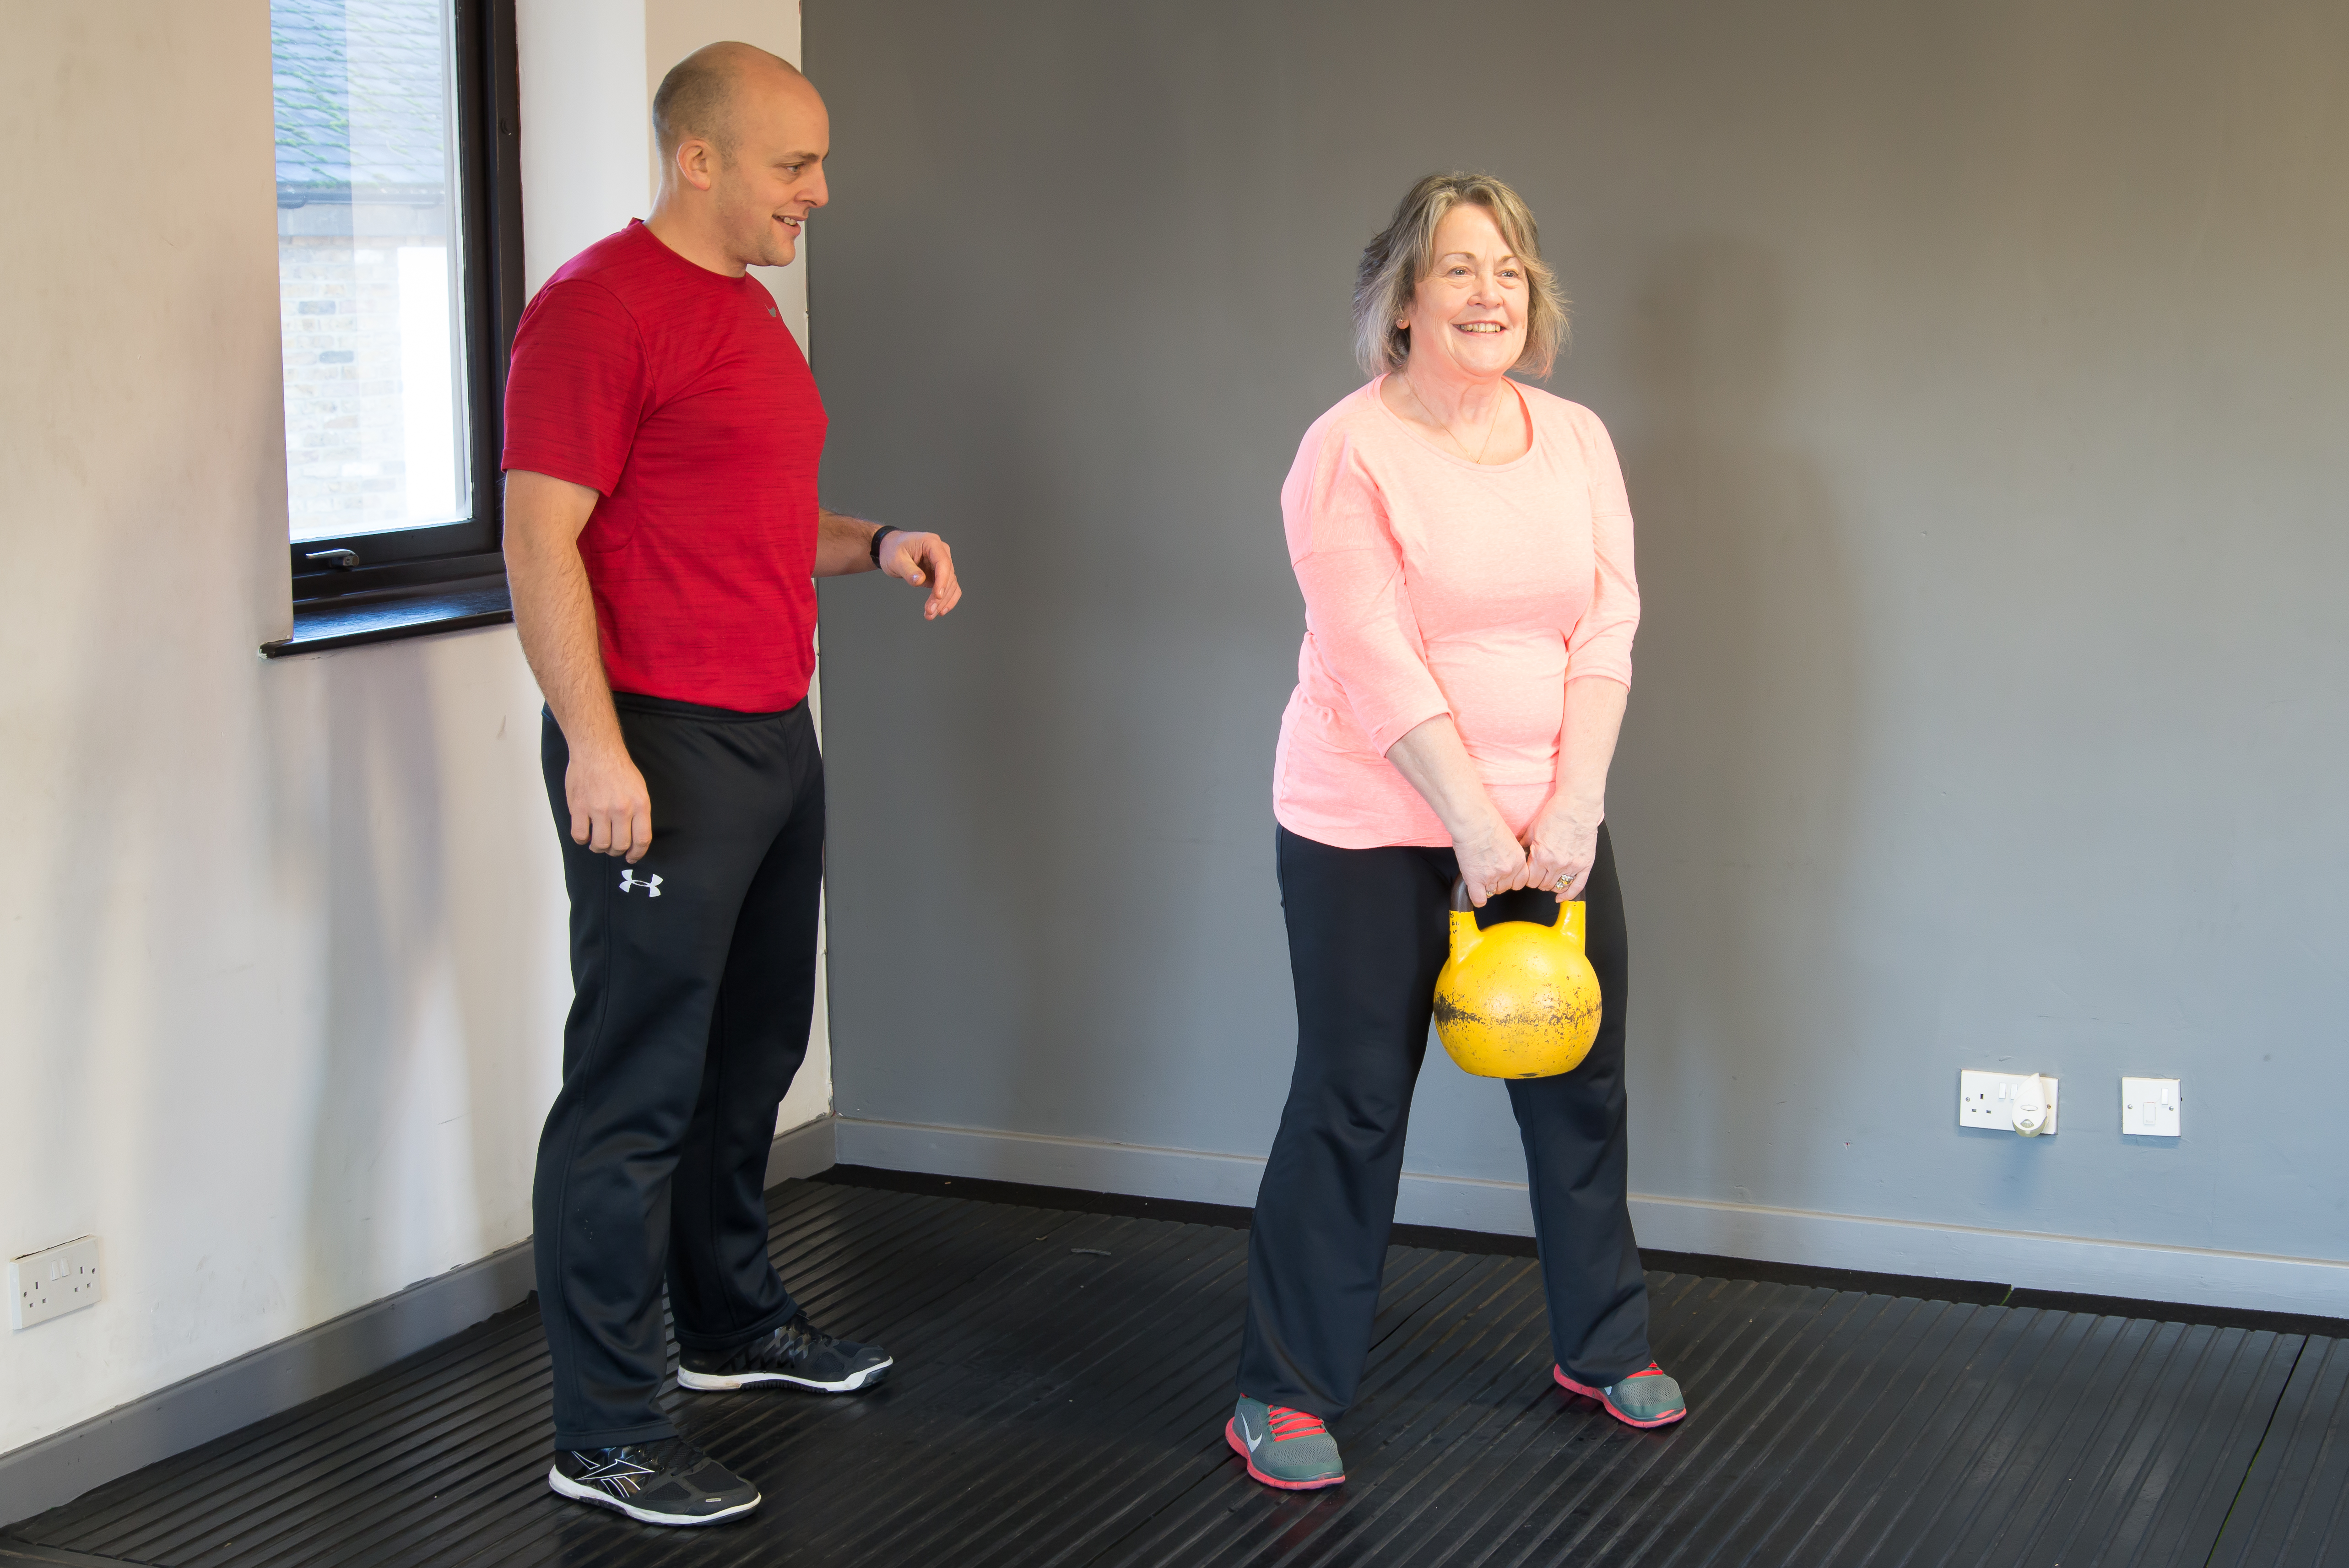 Mum personal training in the gym in Ware